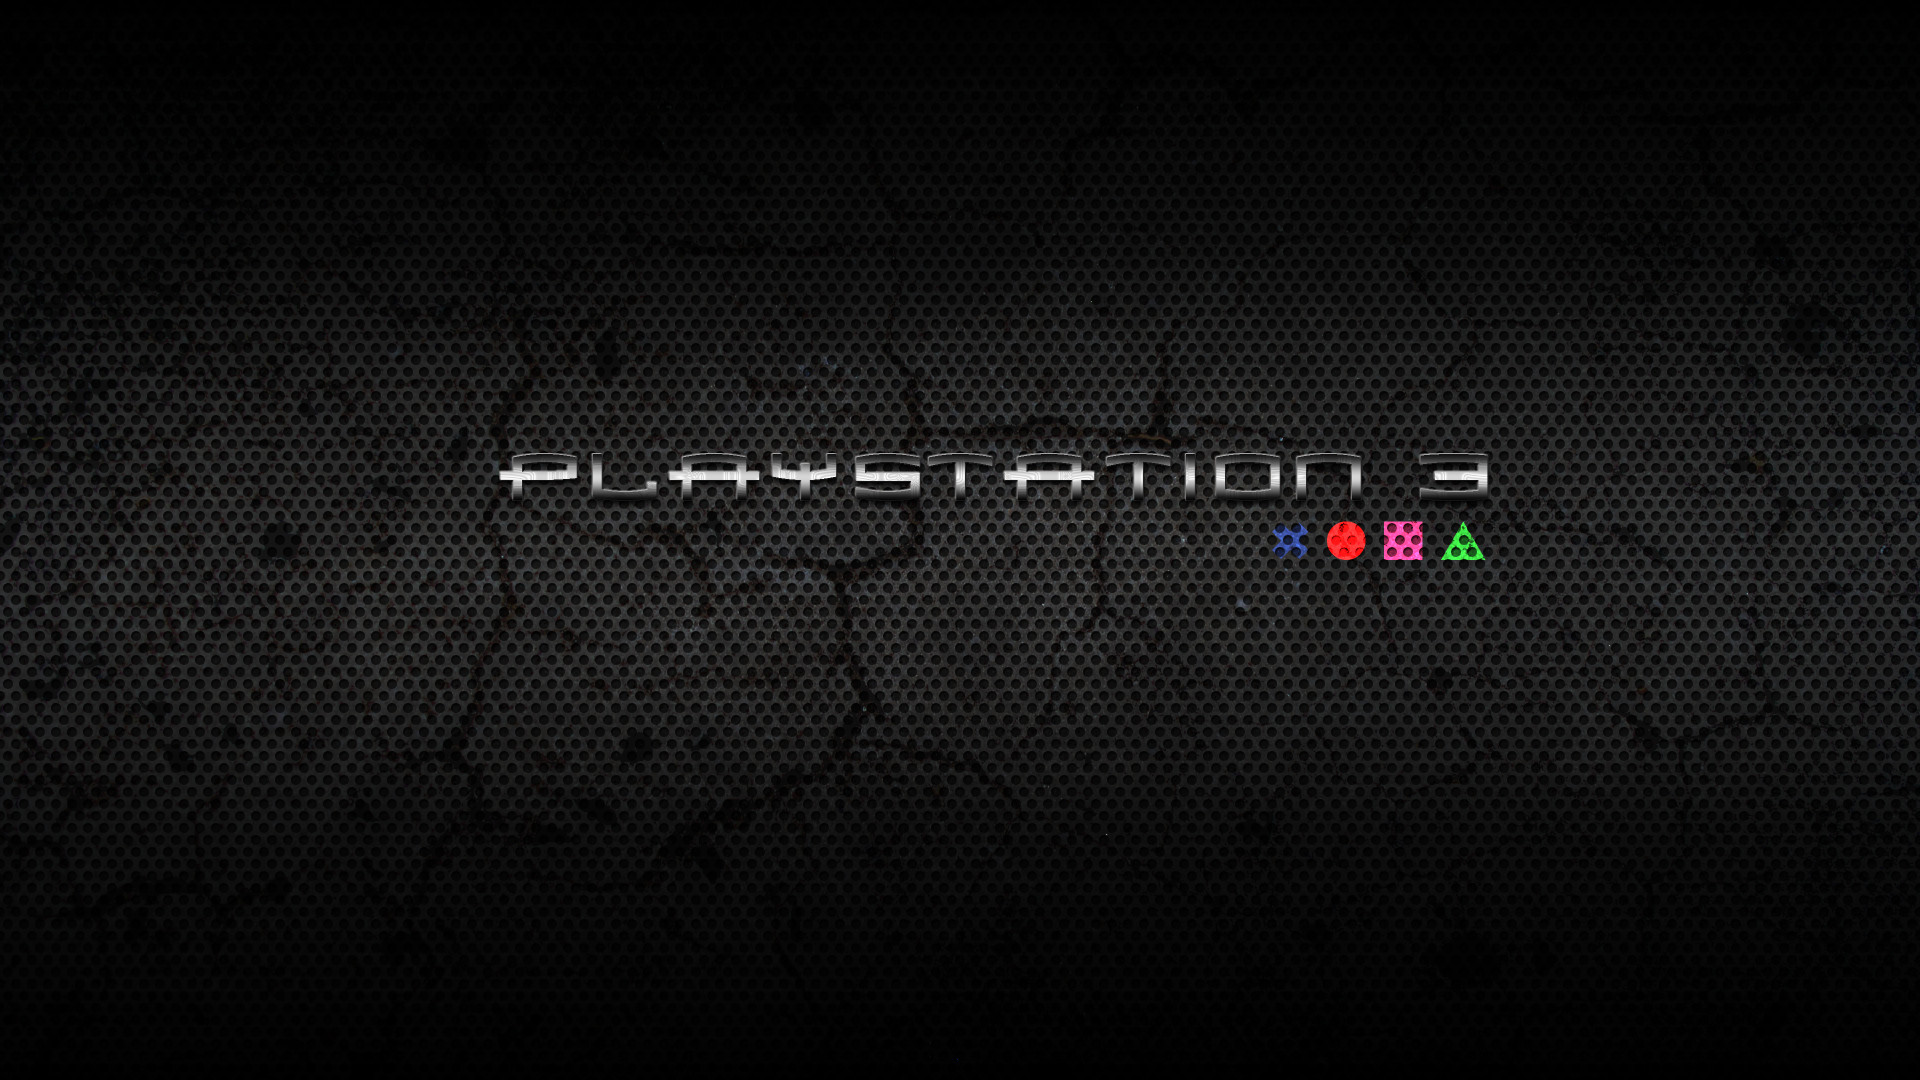 Res: 1920x1080, White Ps3 Controller Wallpaper Playstation 3 wallpaper 233632